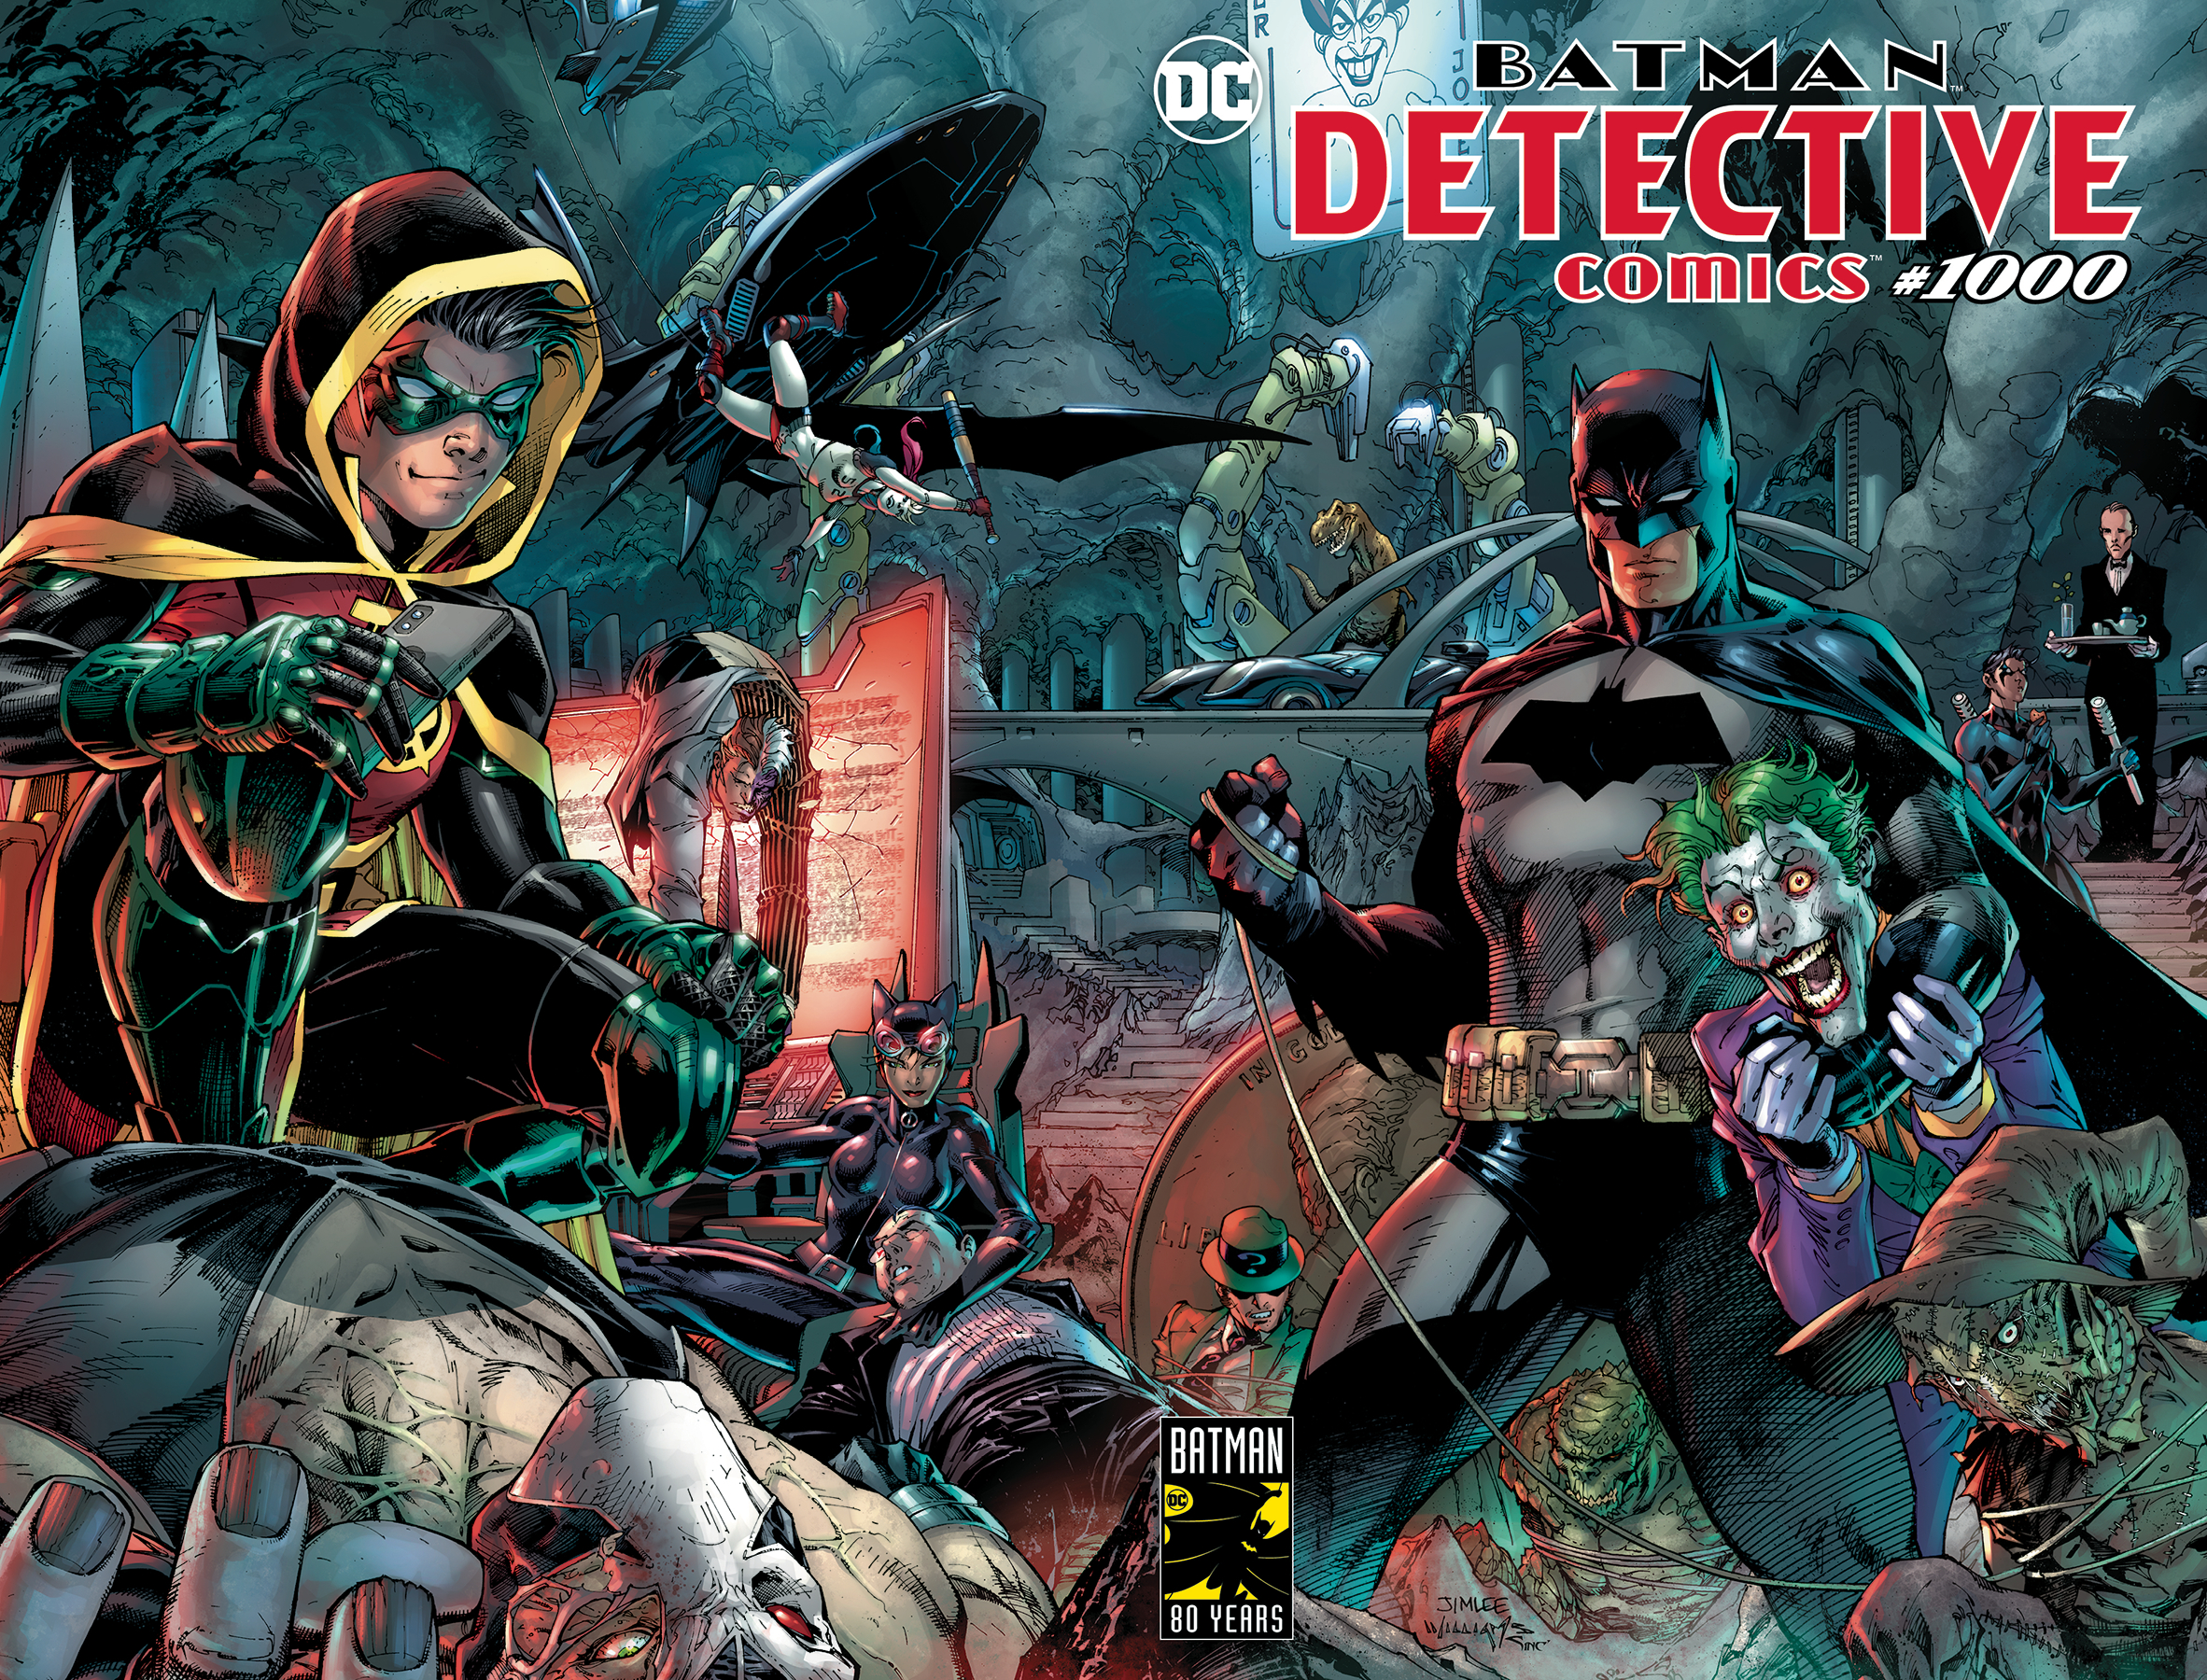 PREVIEWSworld's New Releases For 3/27/2019 - Previews World